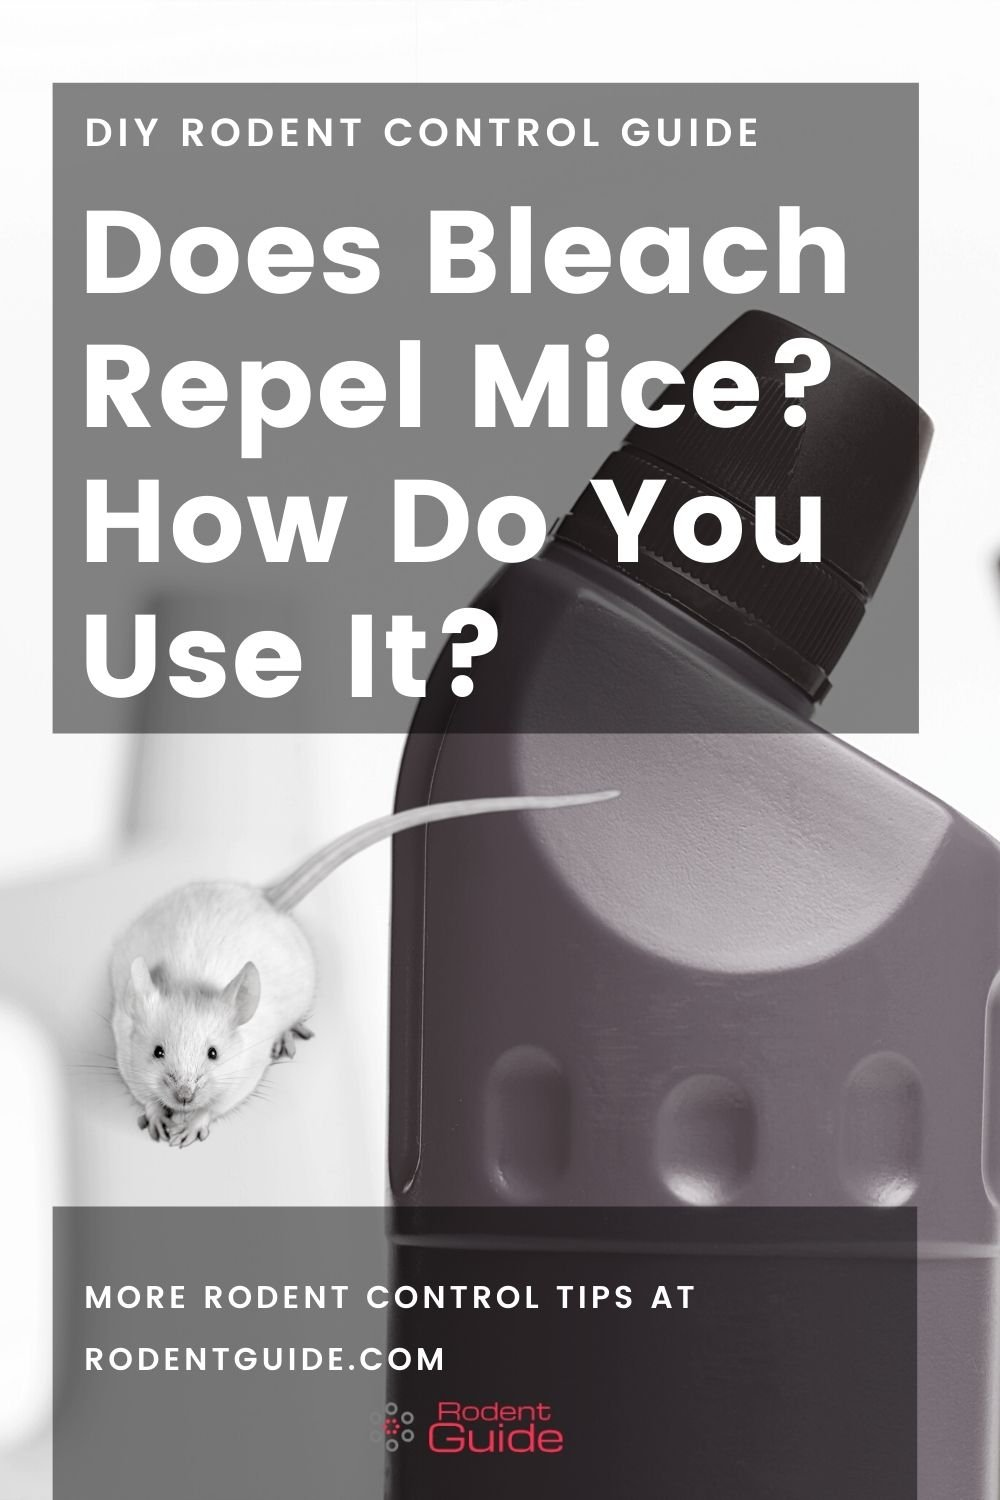 Does Bleach Repel Mice How Do You Use It